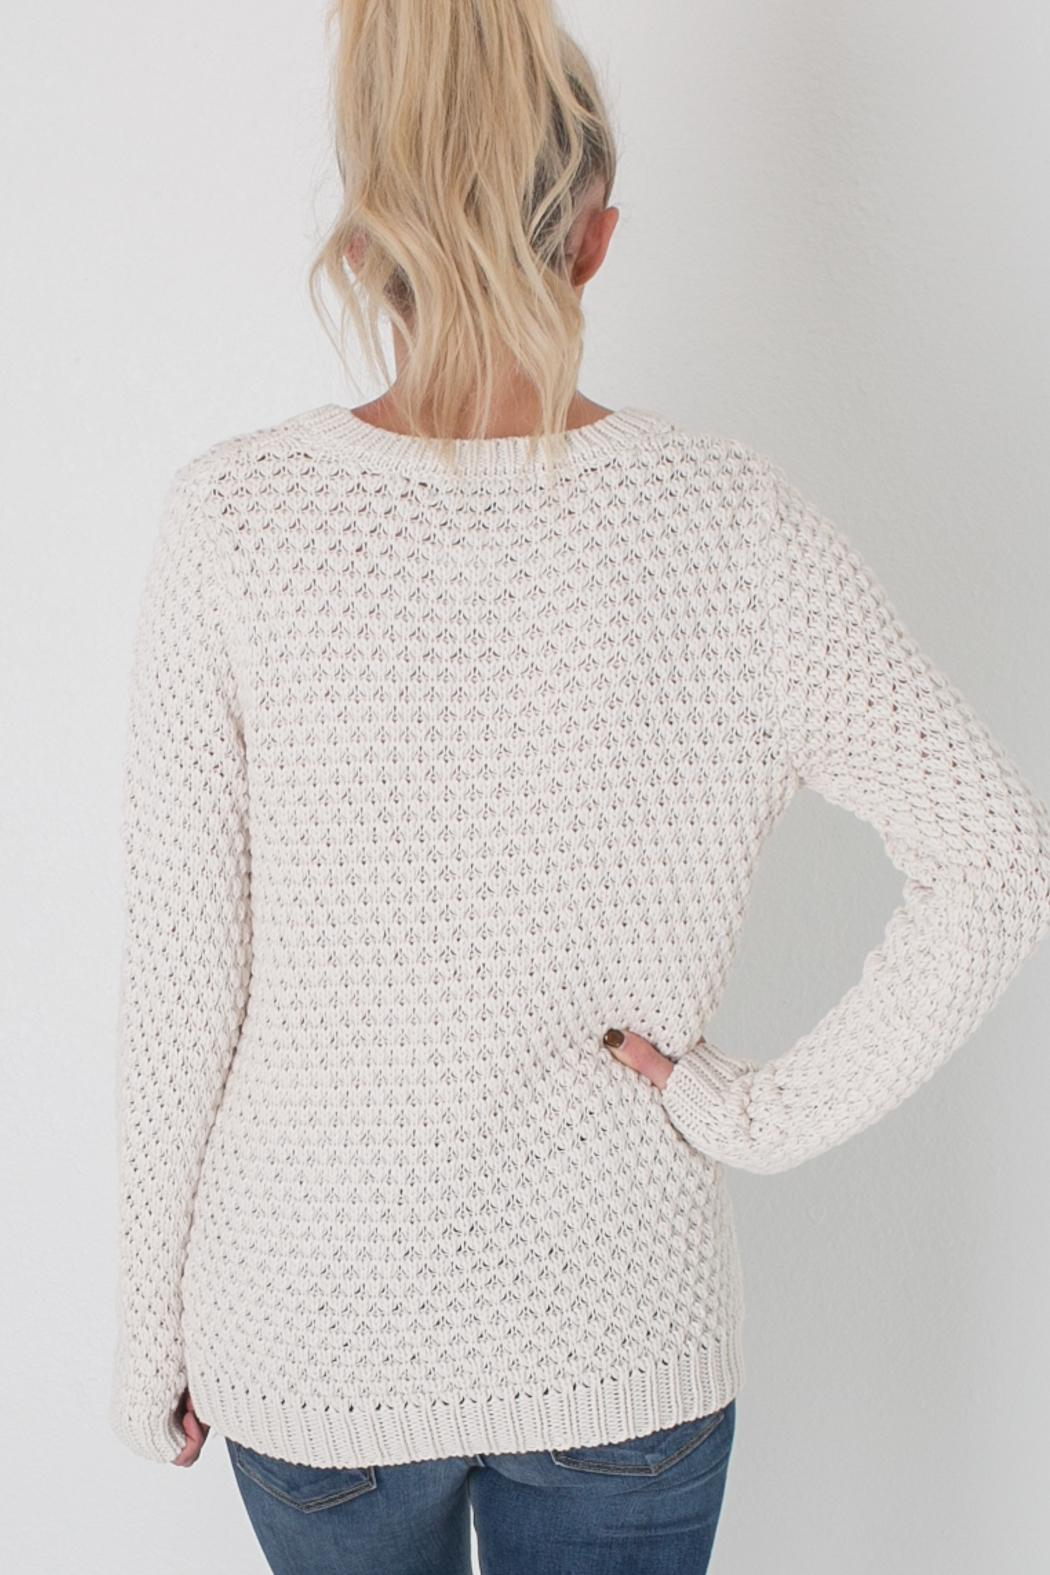 MAK Cream Knit Sweater from Colorado by Apricot Lane - Centennial ...